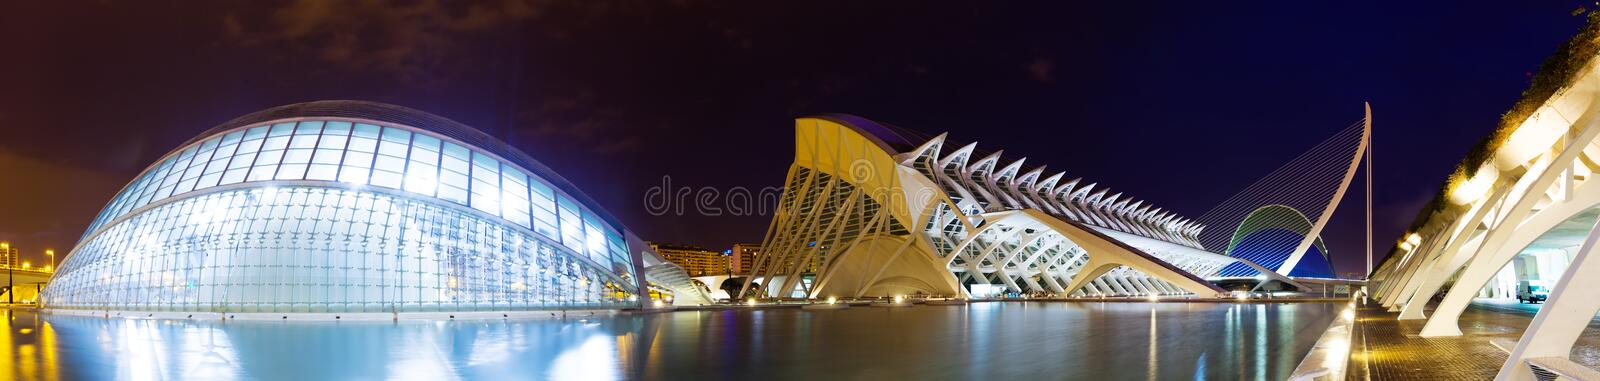 Panoramic view of City of Arts and Sciences in night royalty free stock photos